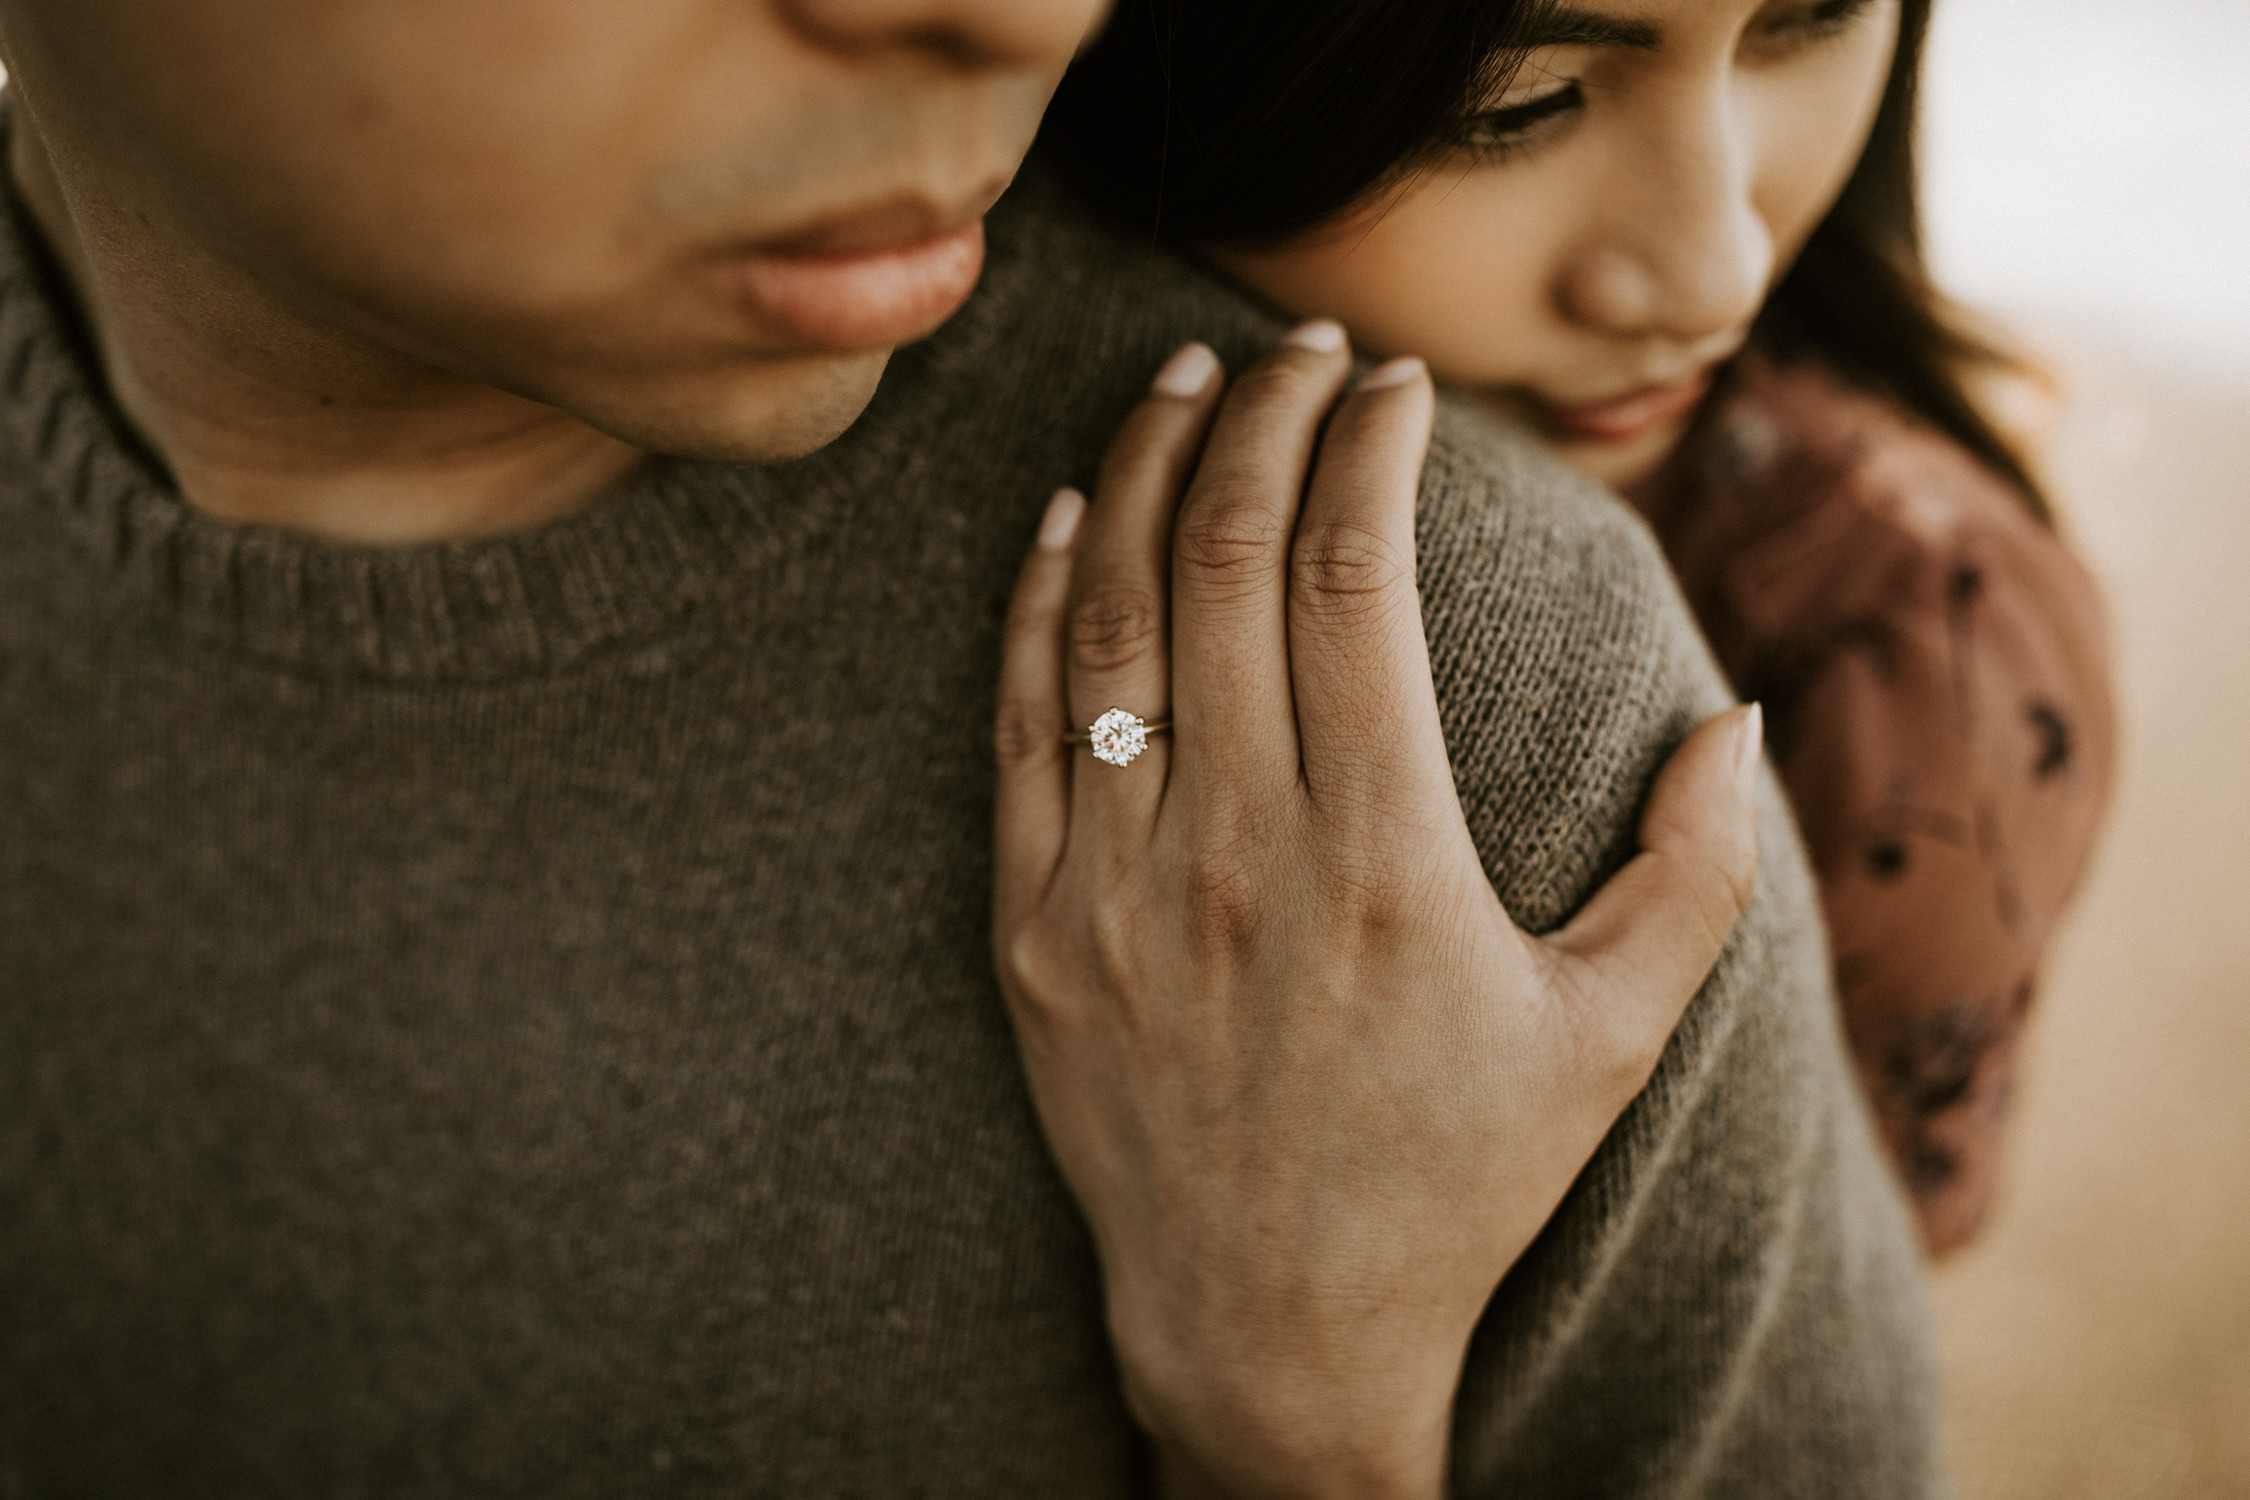 couple-intimate-engagement-session-northern-california-55.jpg